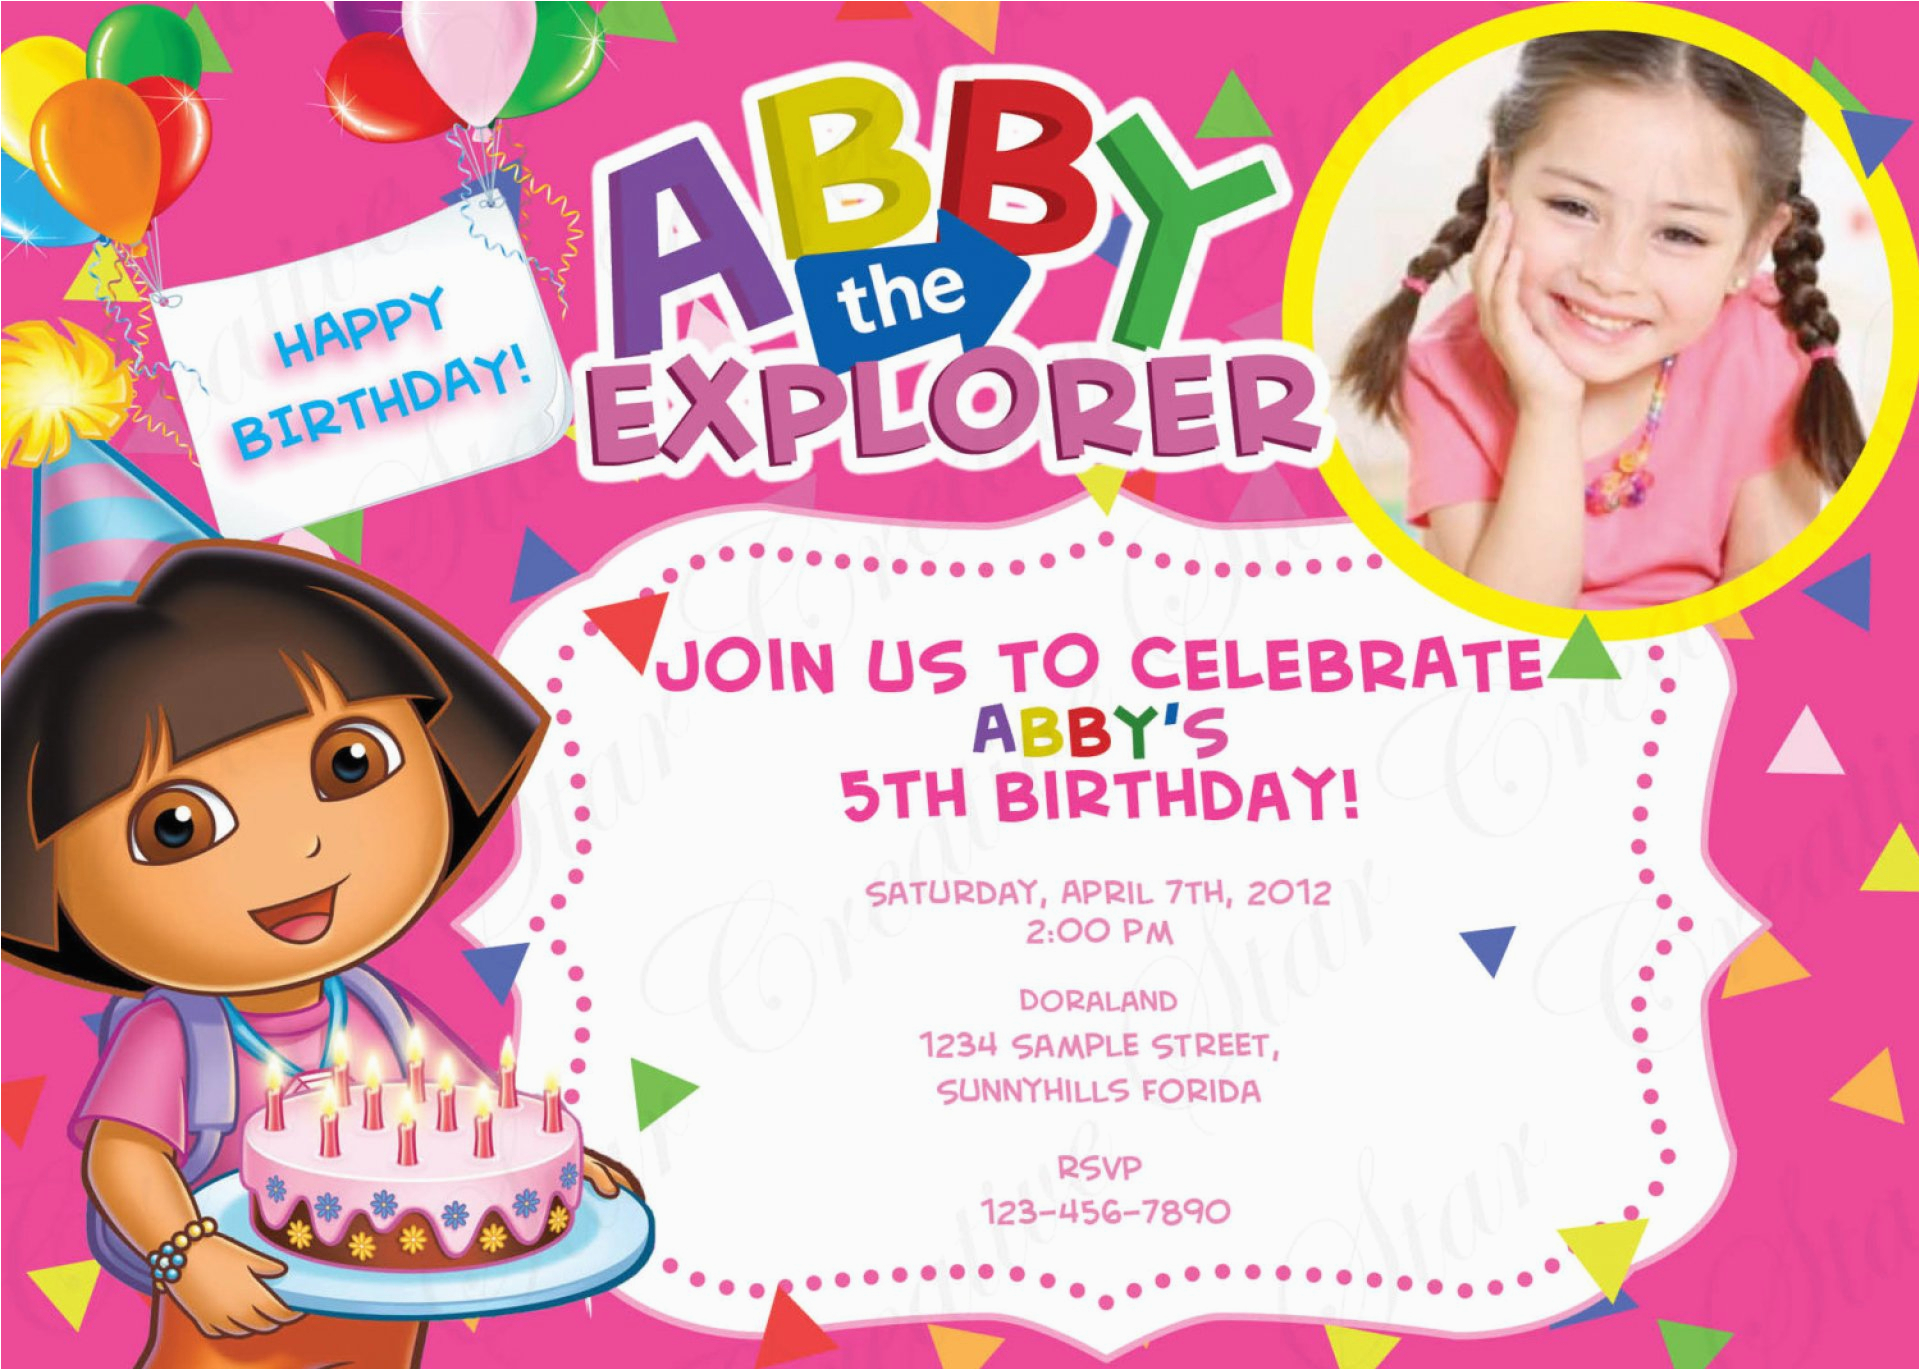 Customized Birthday Invites Invitation Card Custom Invitations Of Jpg 1920x1370 Happy